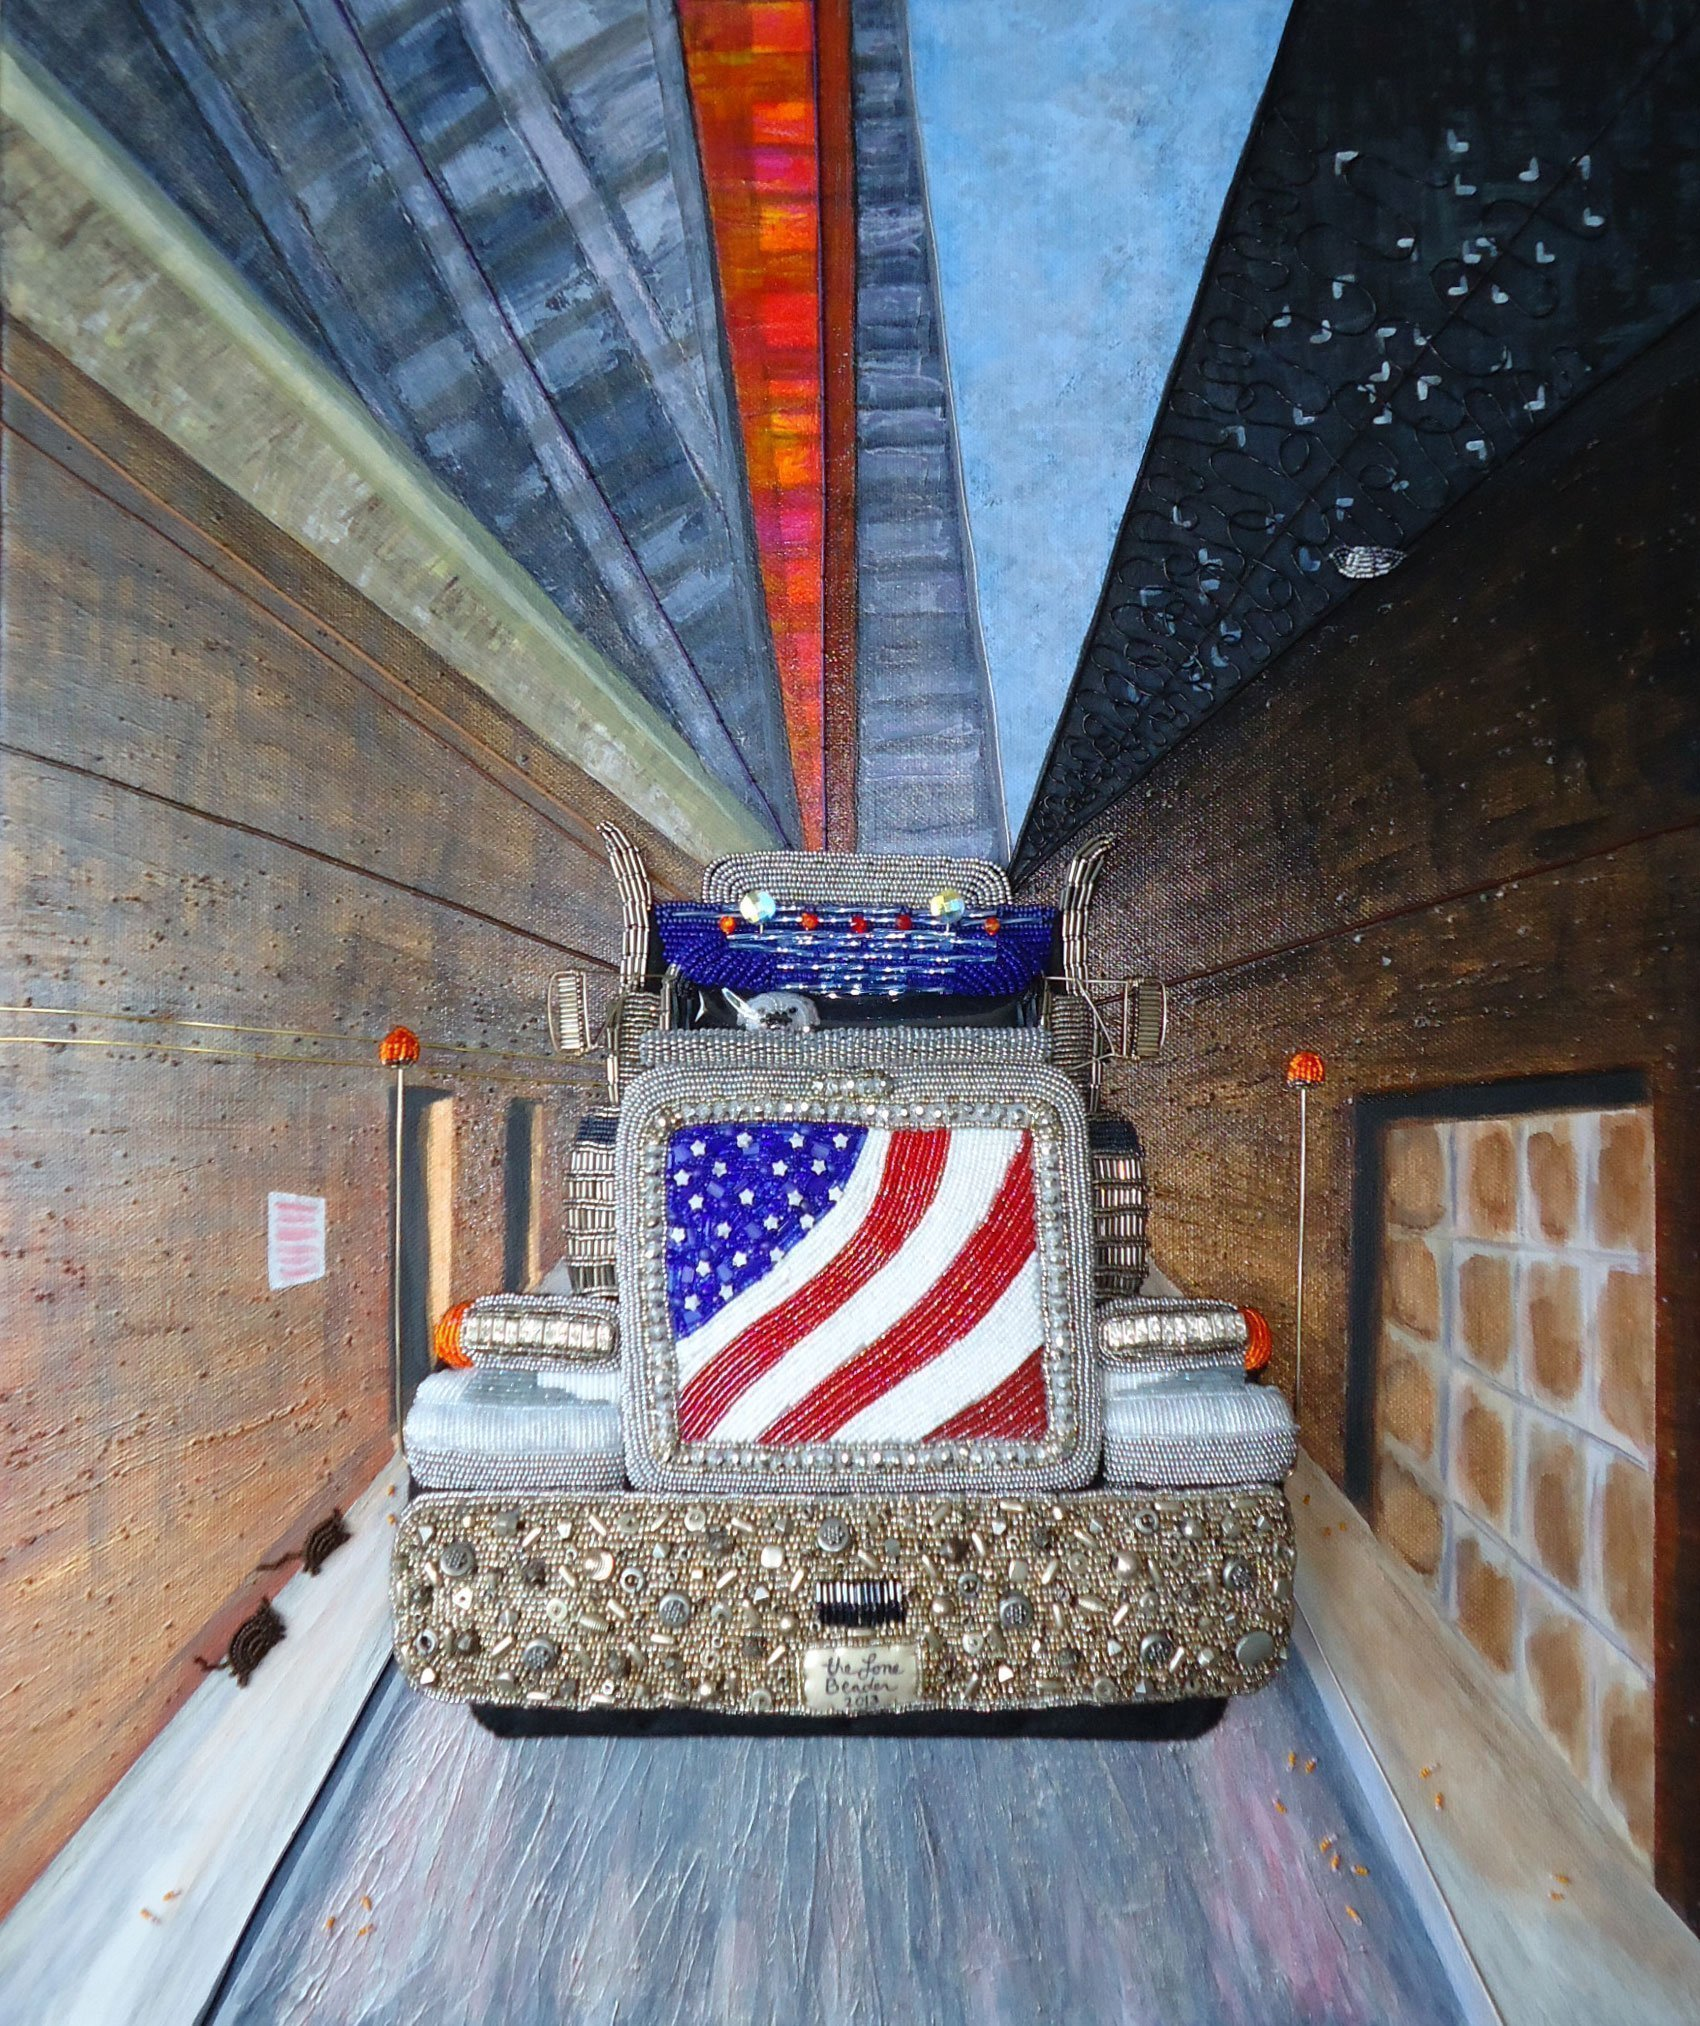 MAJESTIC Beaded Painting Tractor Trailer Truck art and Bulldog 20 x 24 canvas (Ready to Ship) (e)